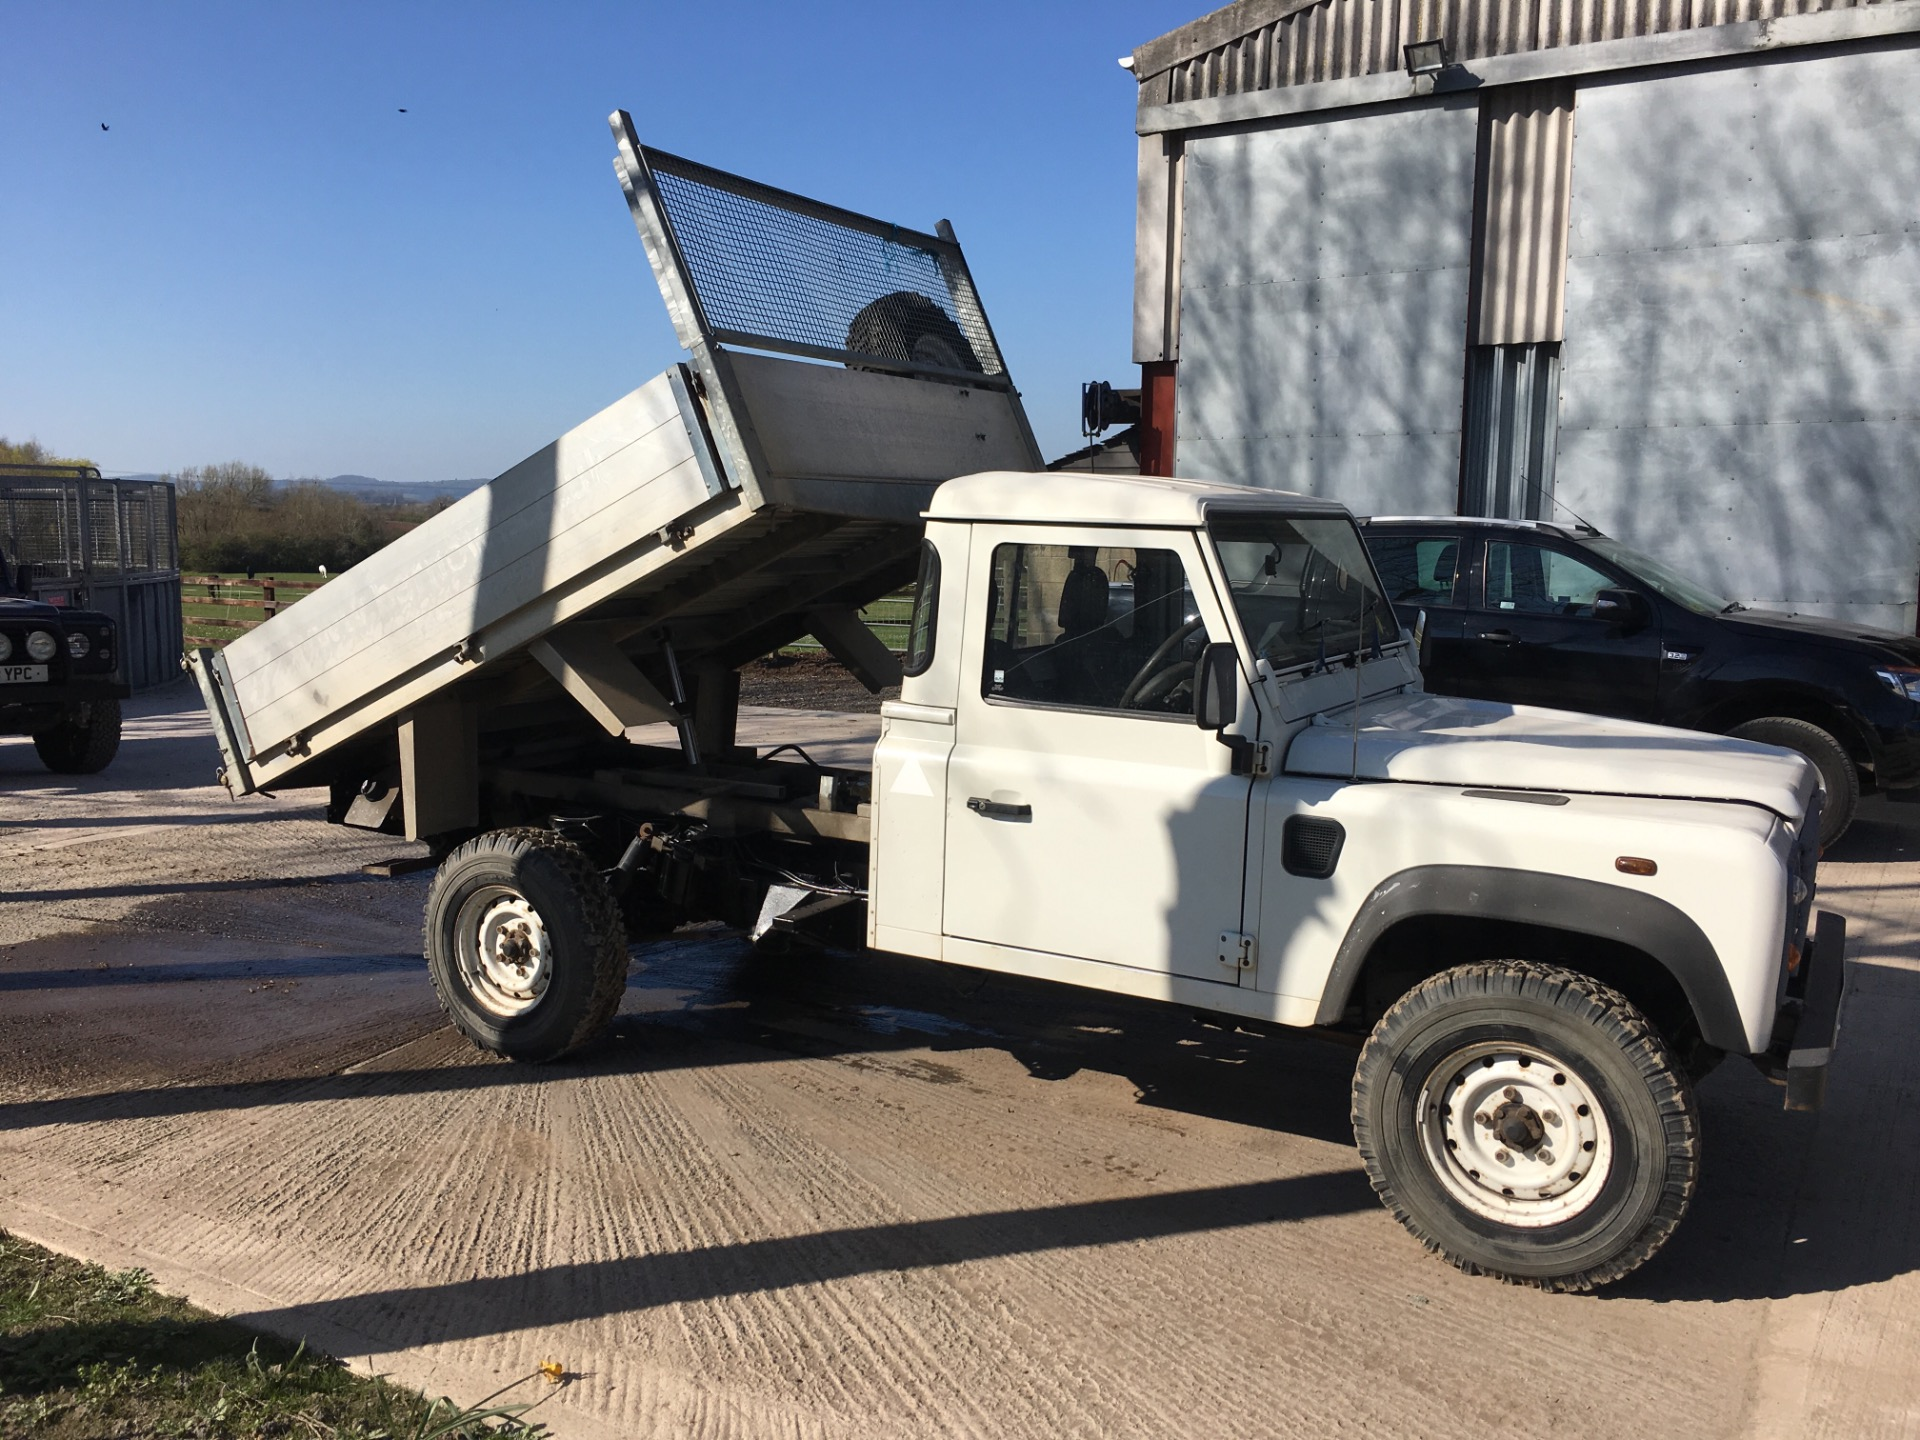 2007 (07) Land Rover Defender Chassis Cab Td5 For Sale In Tirley, Gloucestershire